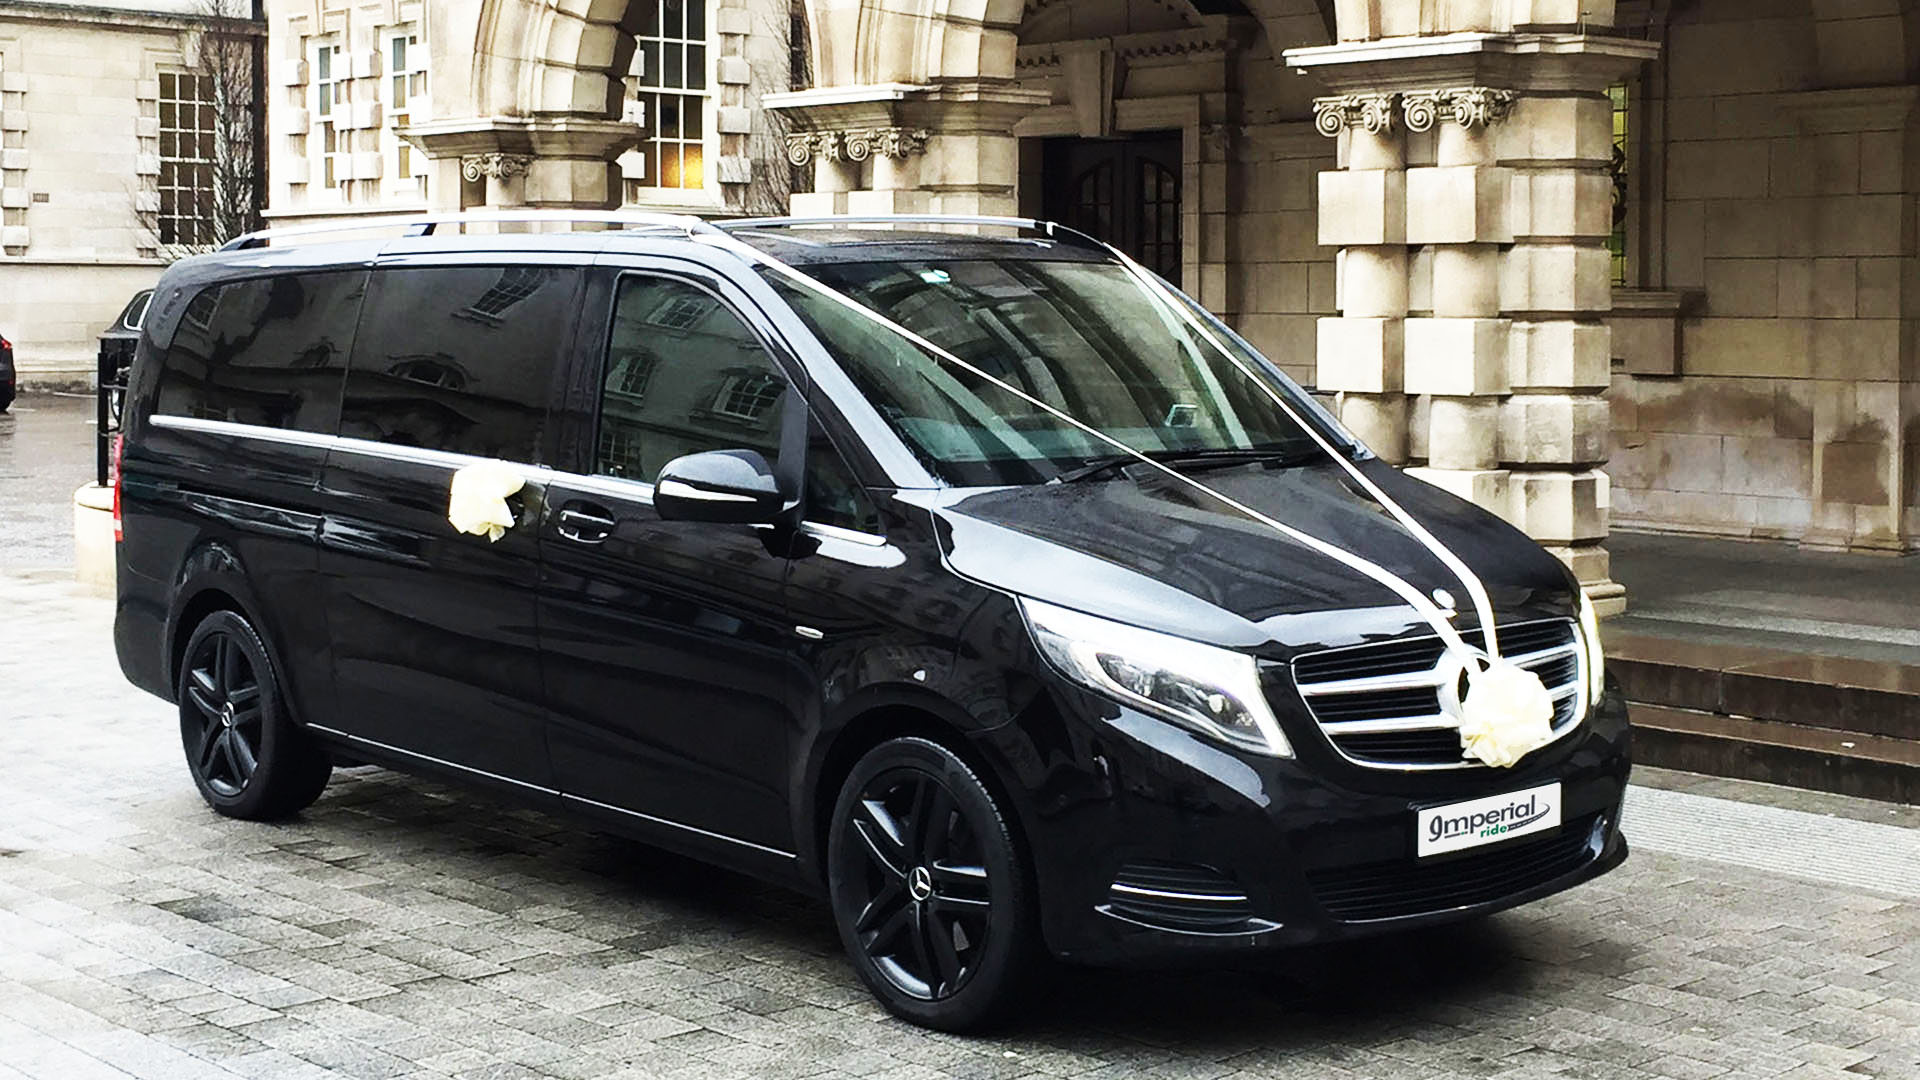 v-class-wedding-hire-in-richmond-upon-thames